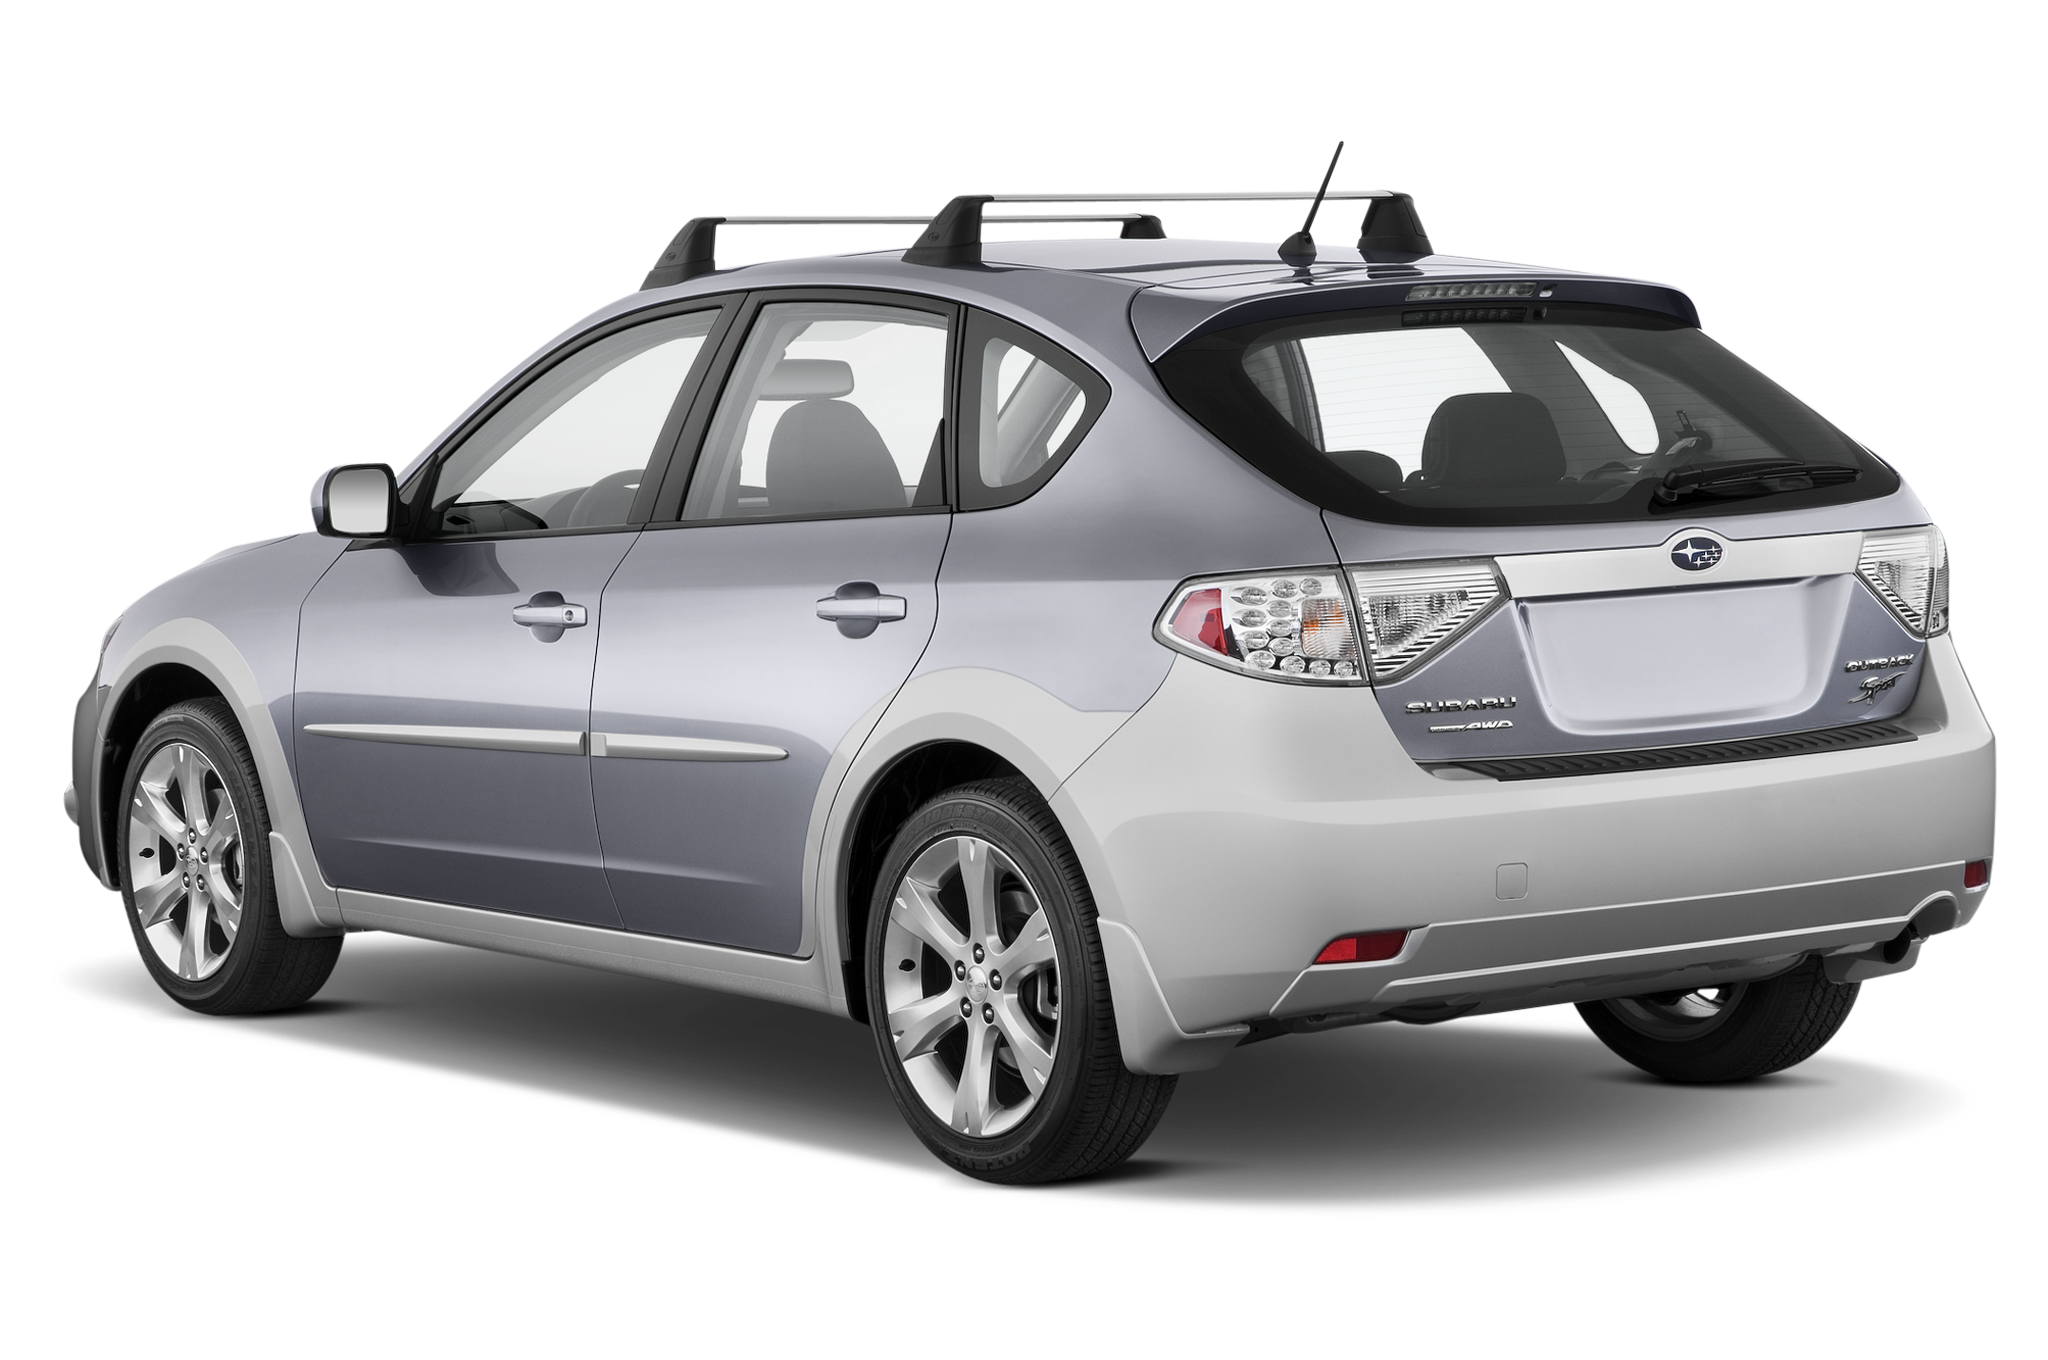 2010 subaru impreza premium subaru midsize sedan. Black Bedroom Furniture Sets. Home Design Ideas